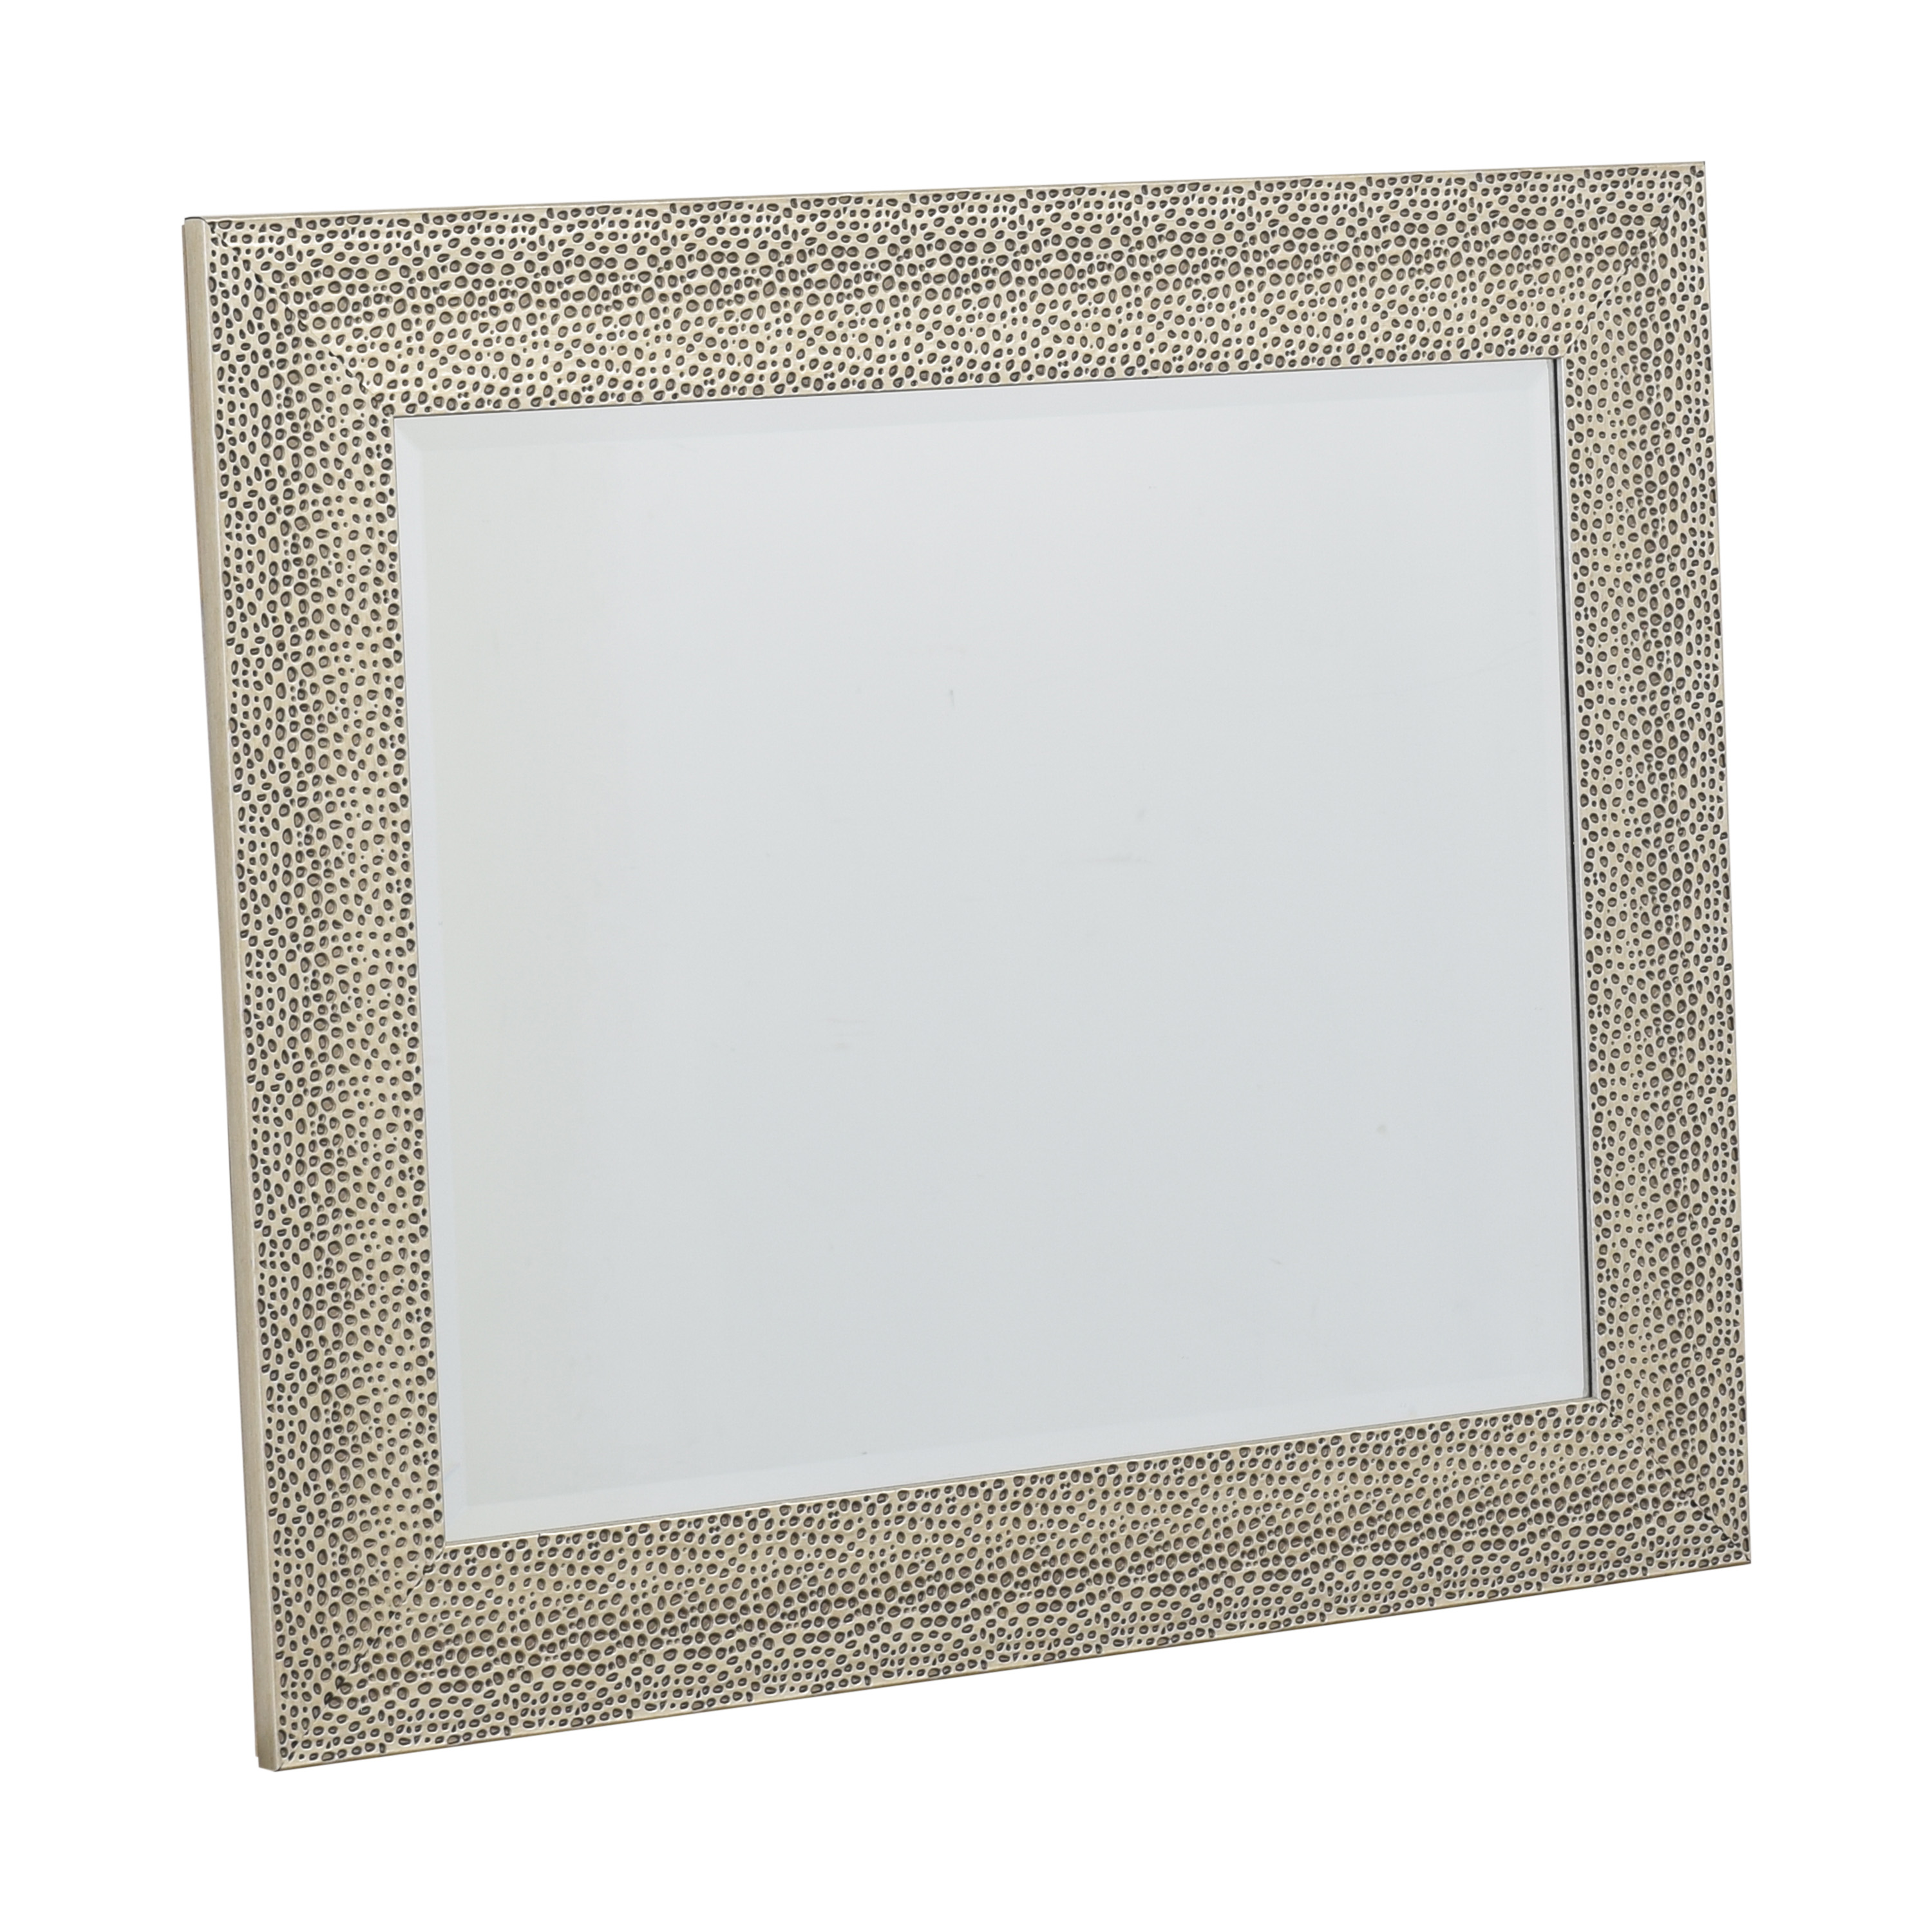 BP Industries Framed Wall Mirror / Mirrors